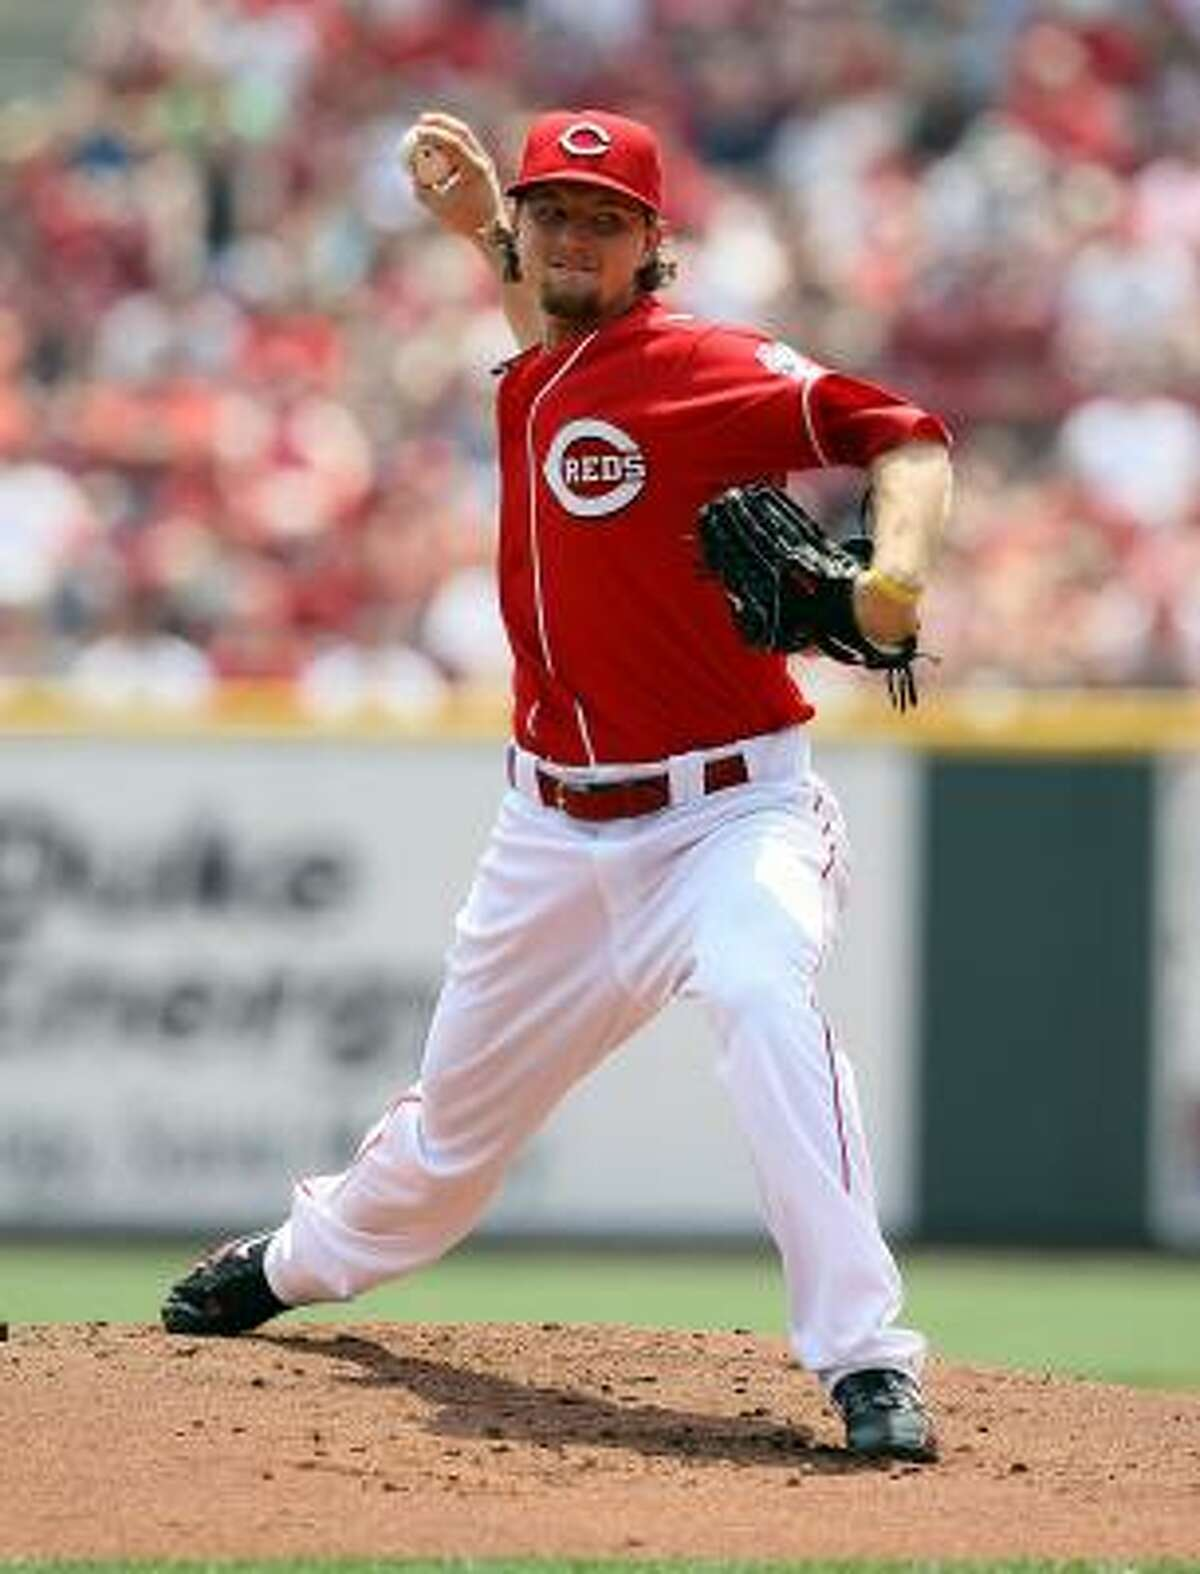 Reds righthander Mike Leake did not allow a run in six innings.